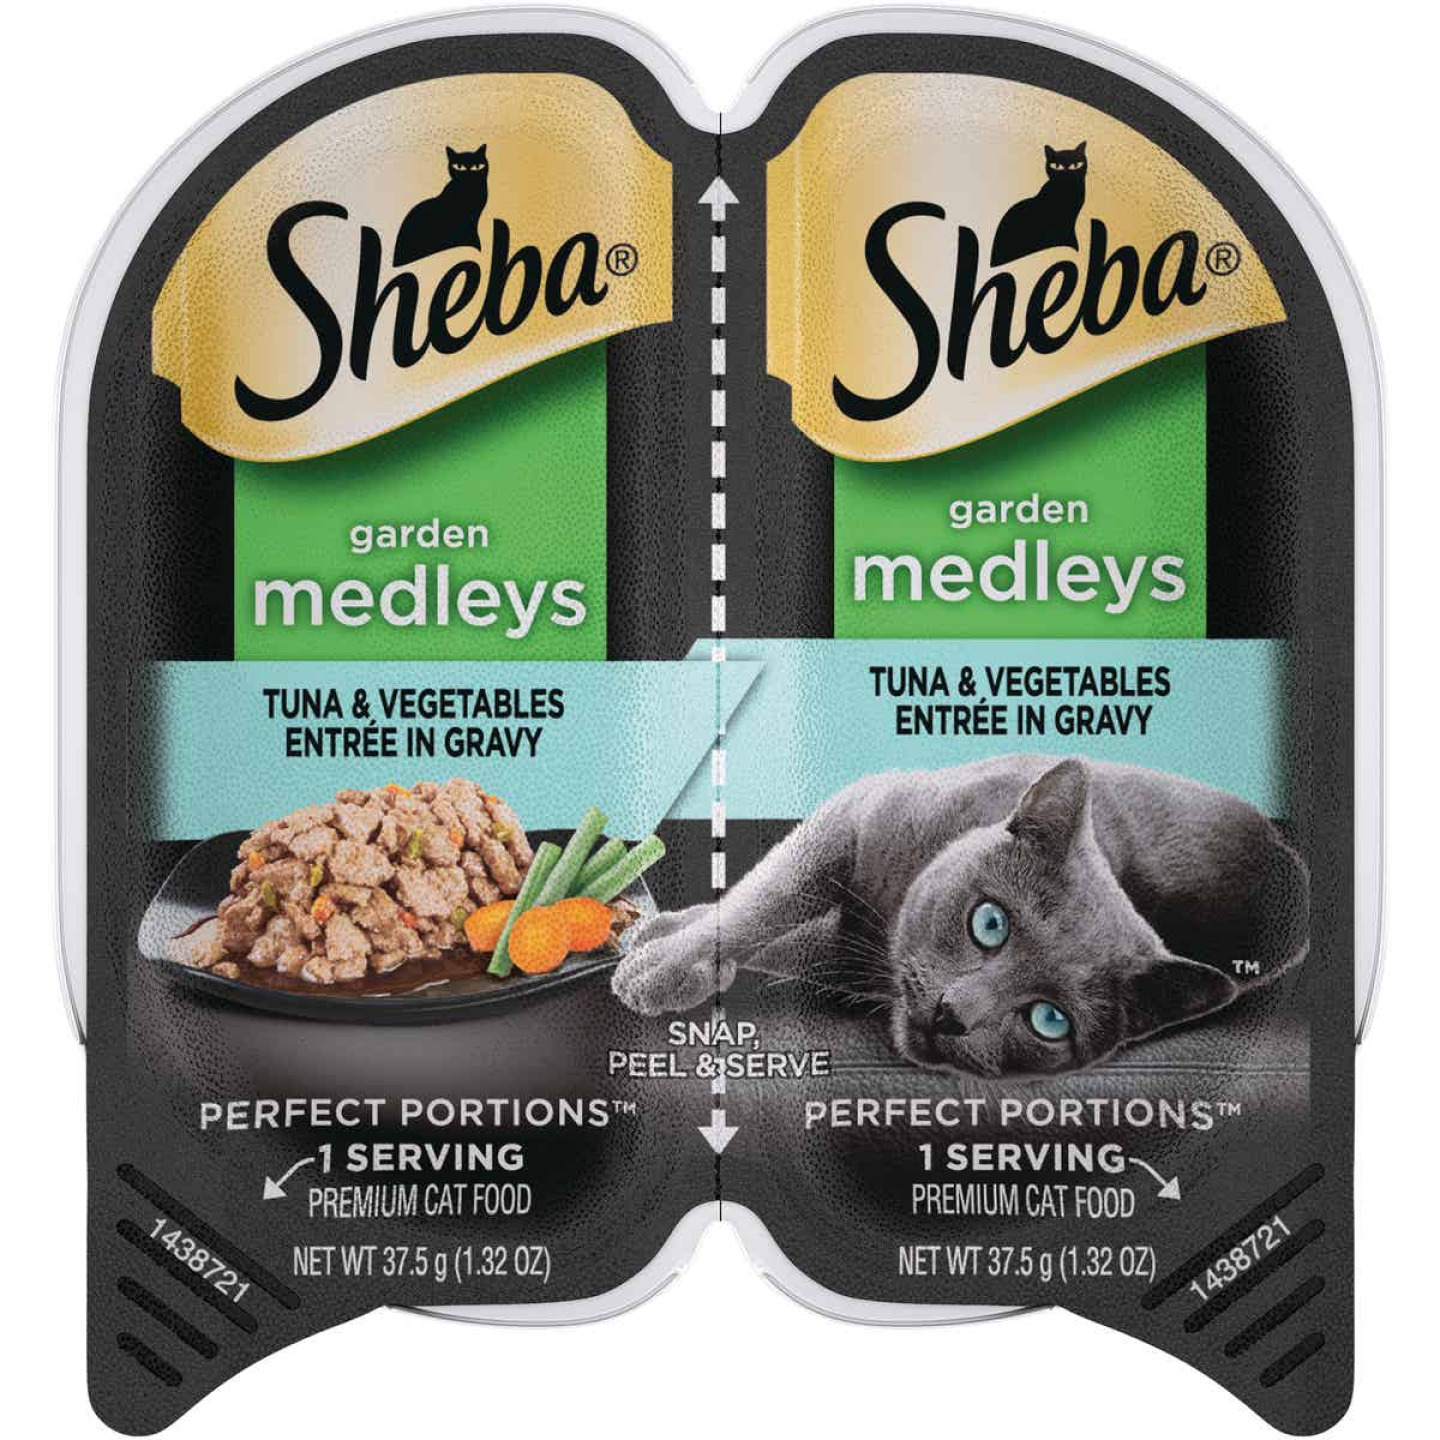 Sheba Perfect Portions Garden Medleys 2.6 Oz. Adult Tuna & Vegetables Wet Cat Food Image 1